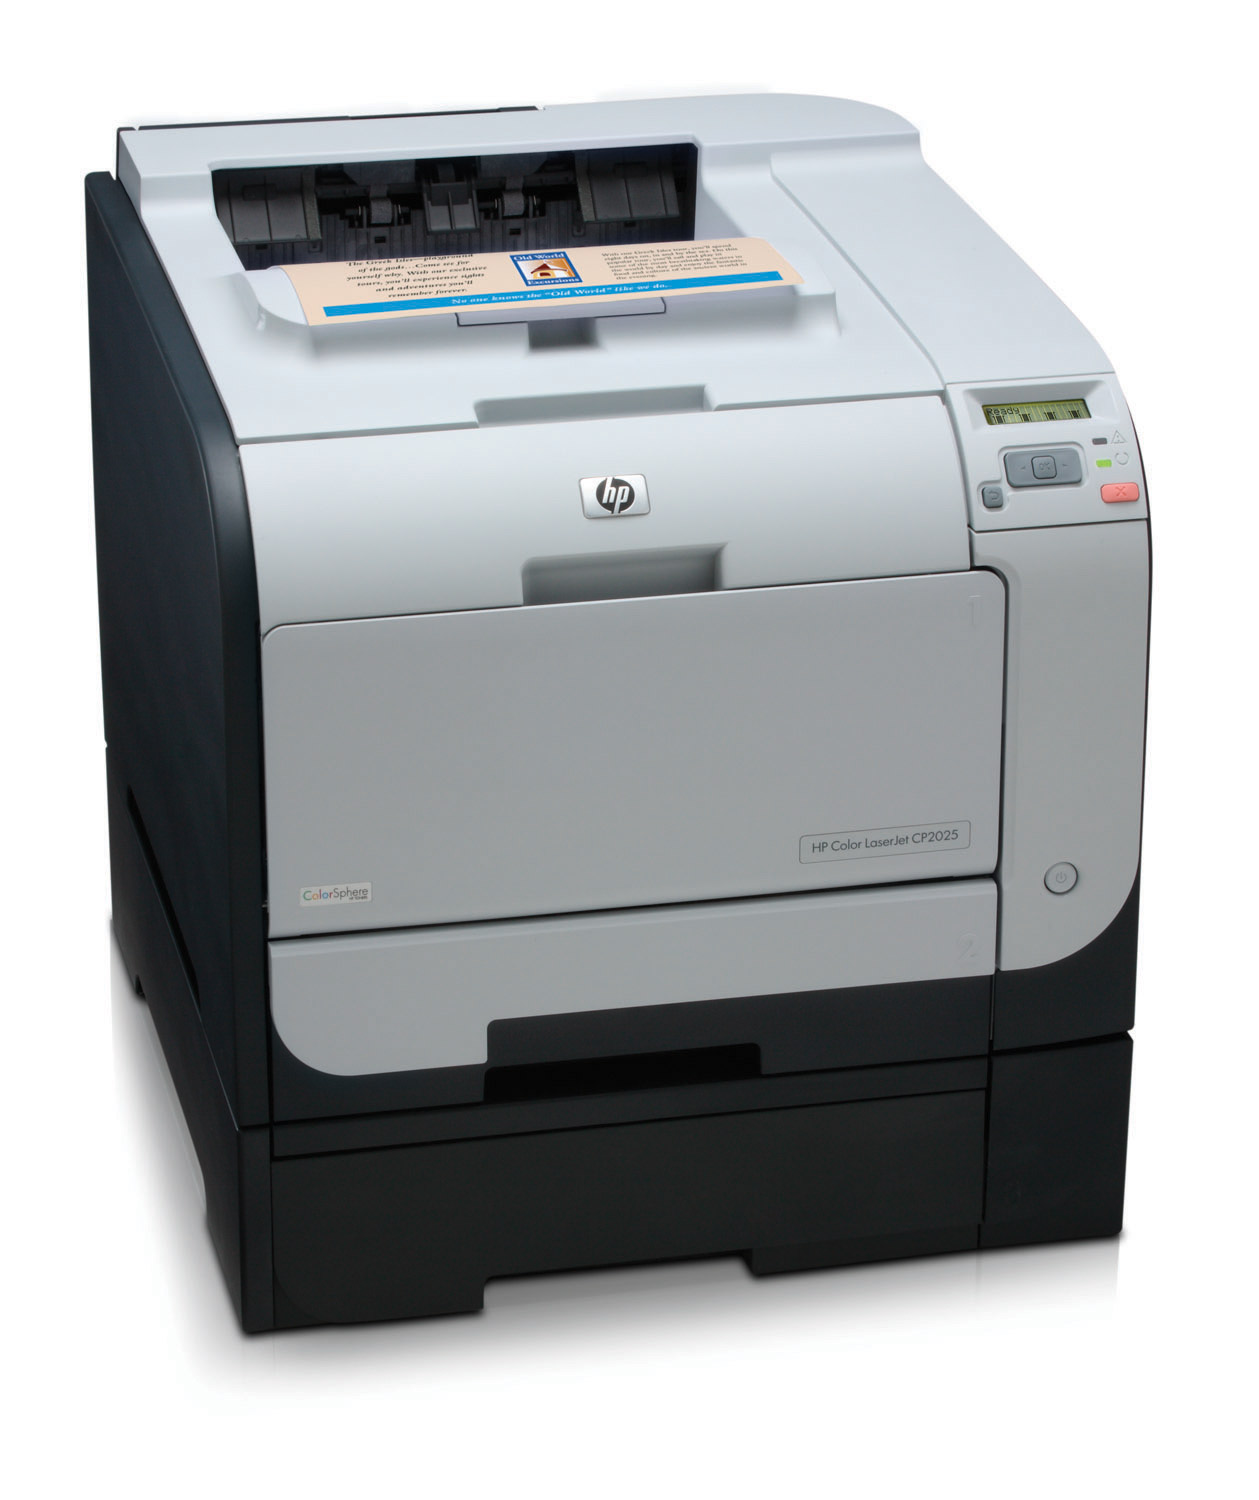 Amazon.com: HP CP2025DN Color LaserJet Printer: Electronics